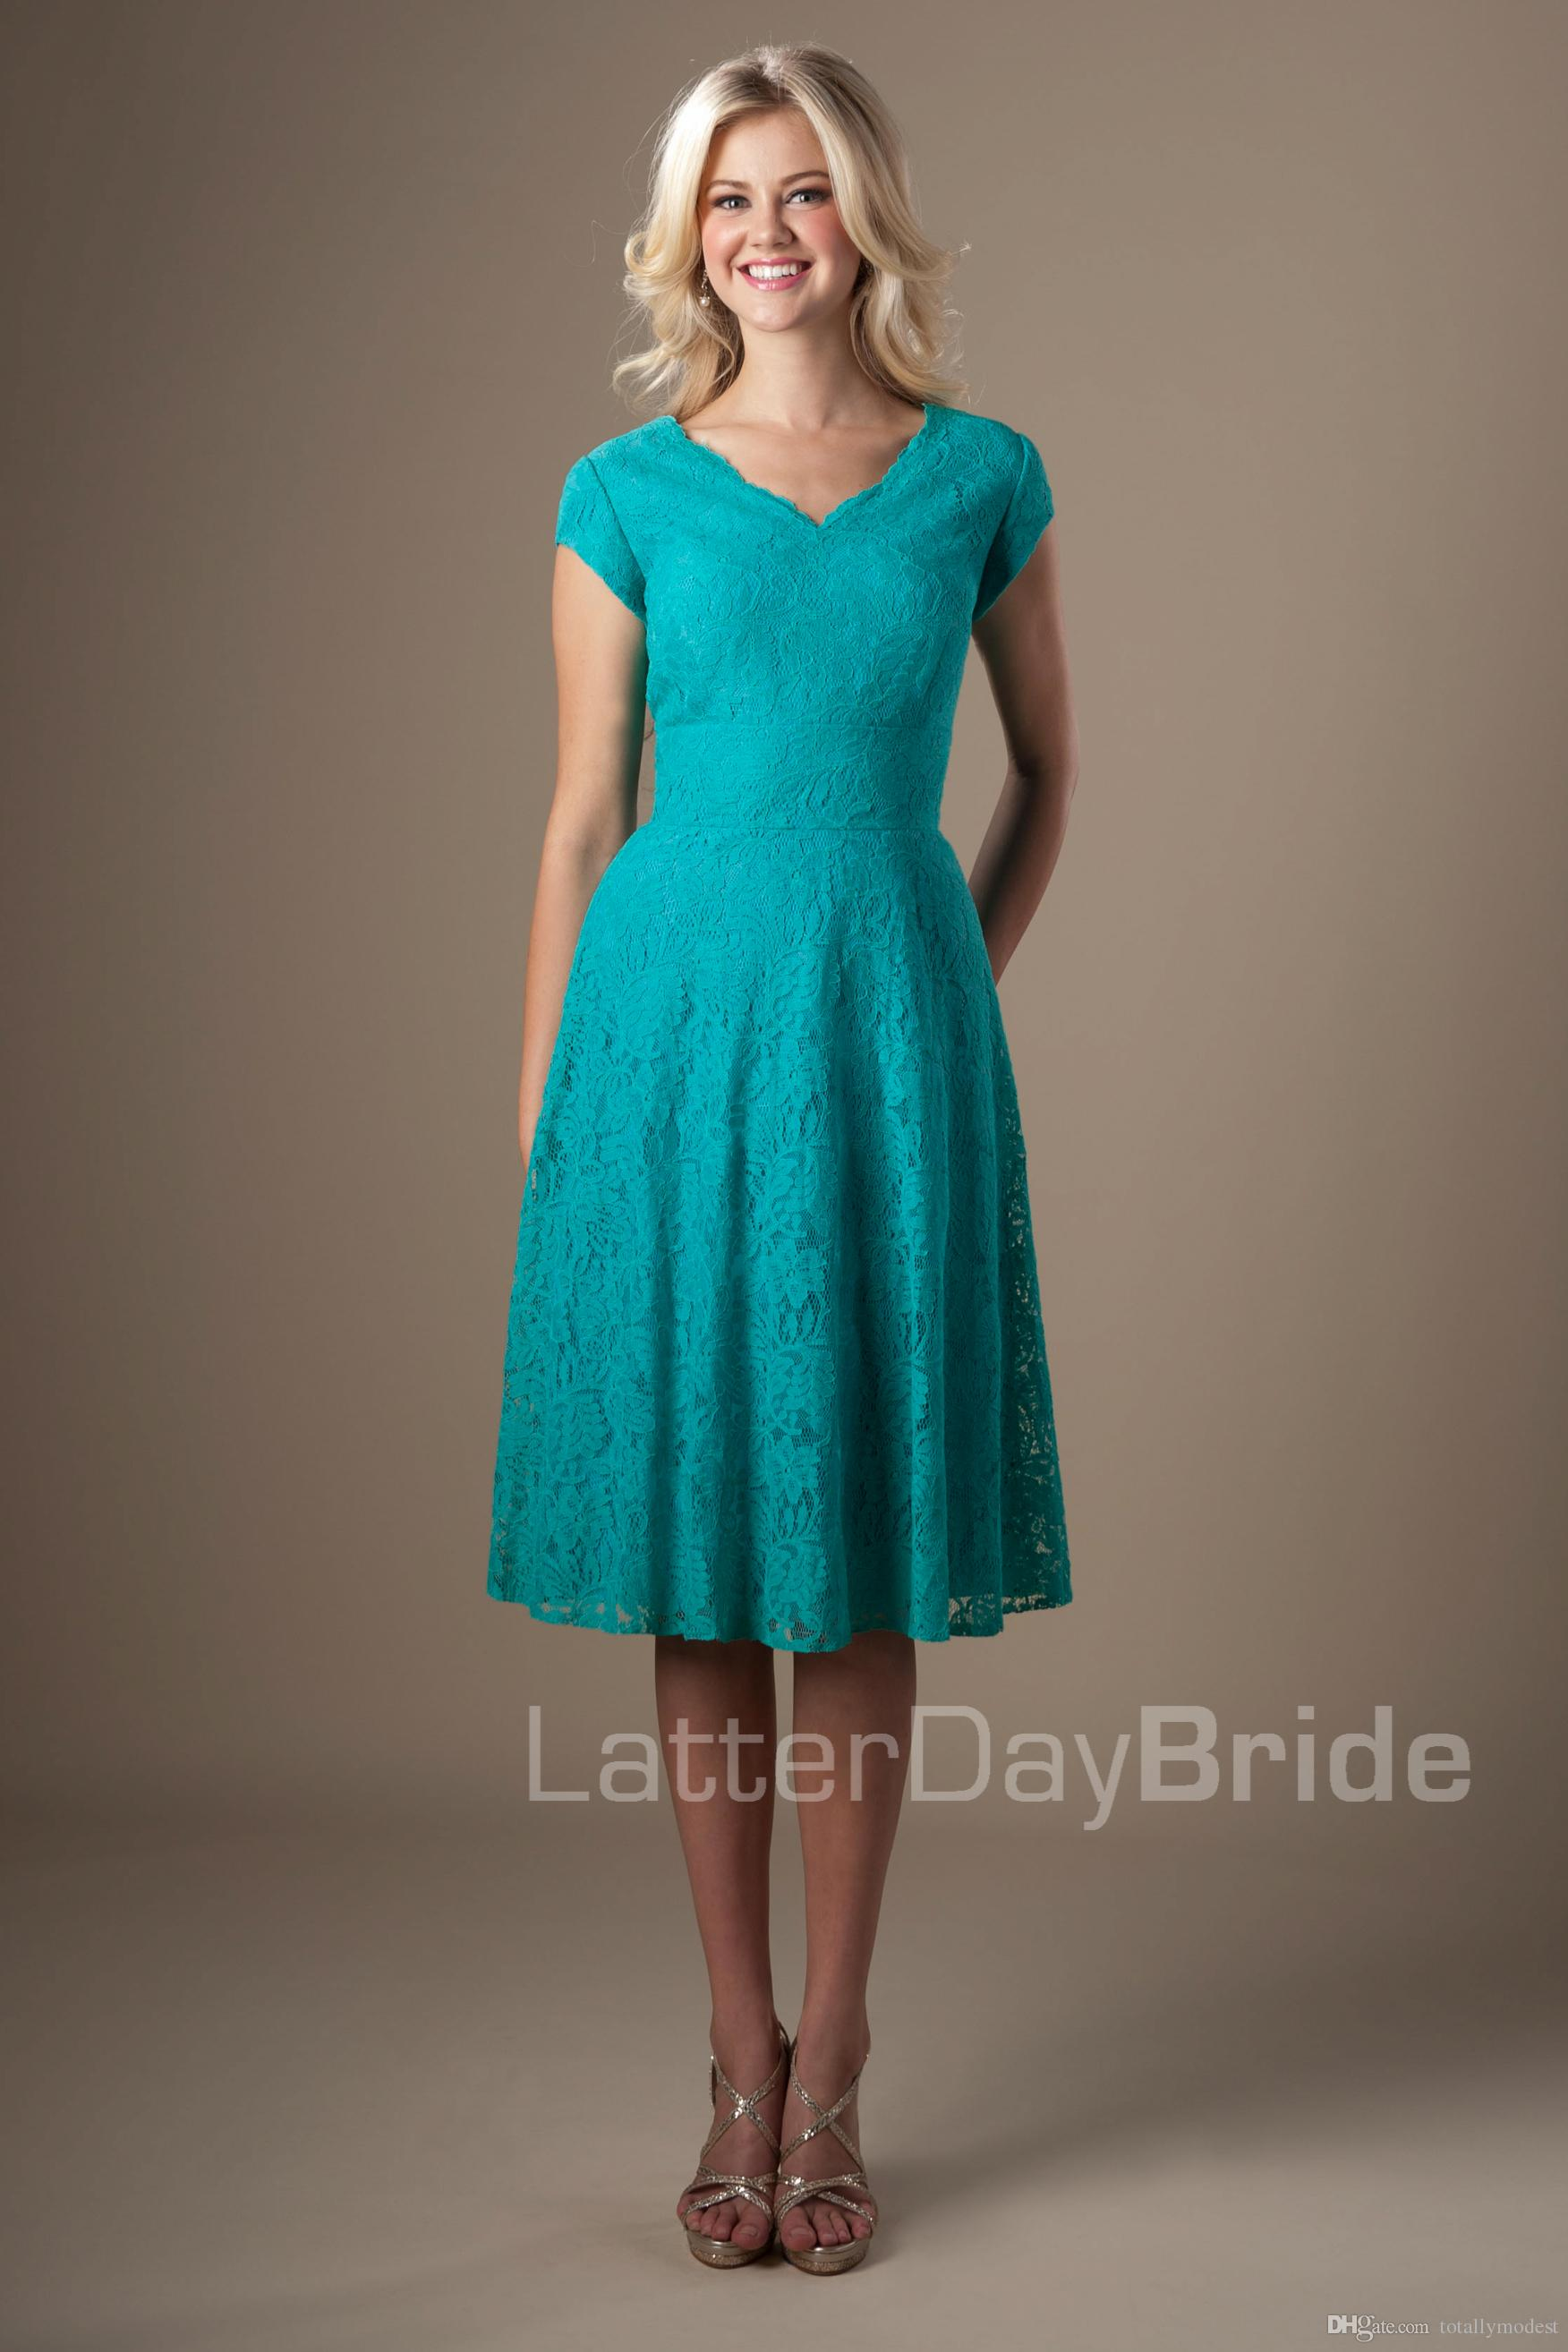 Teal Lace Vintage Short Modest Bridesmaid Dresses With Cap Sleeves V ...